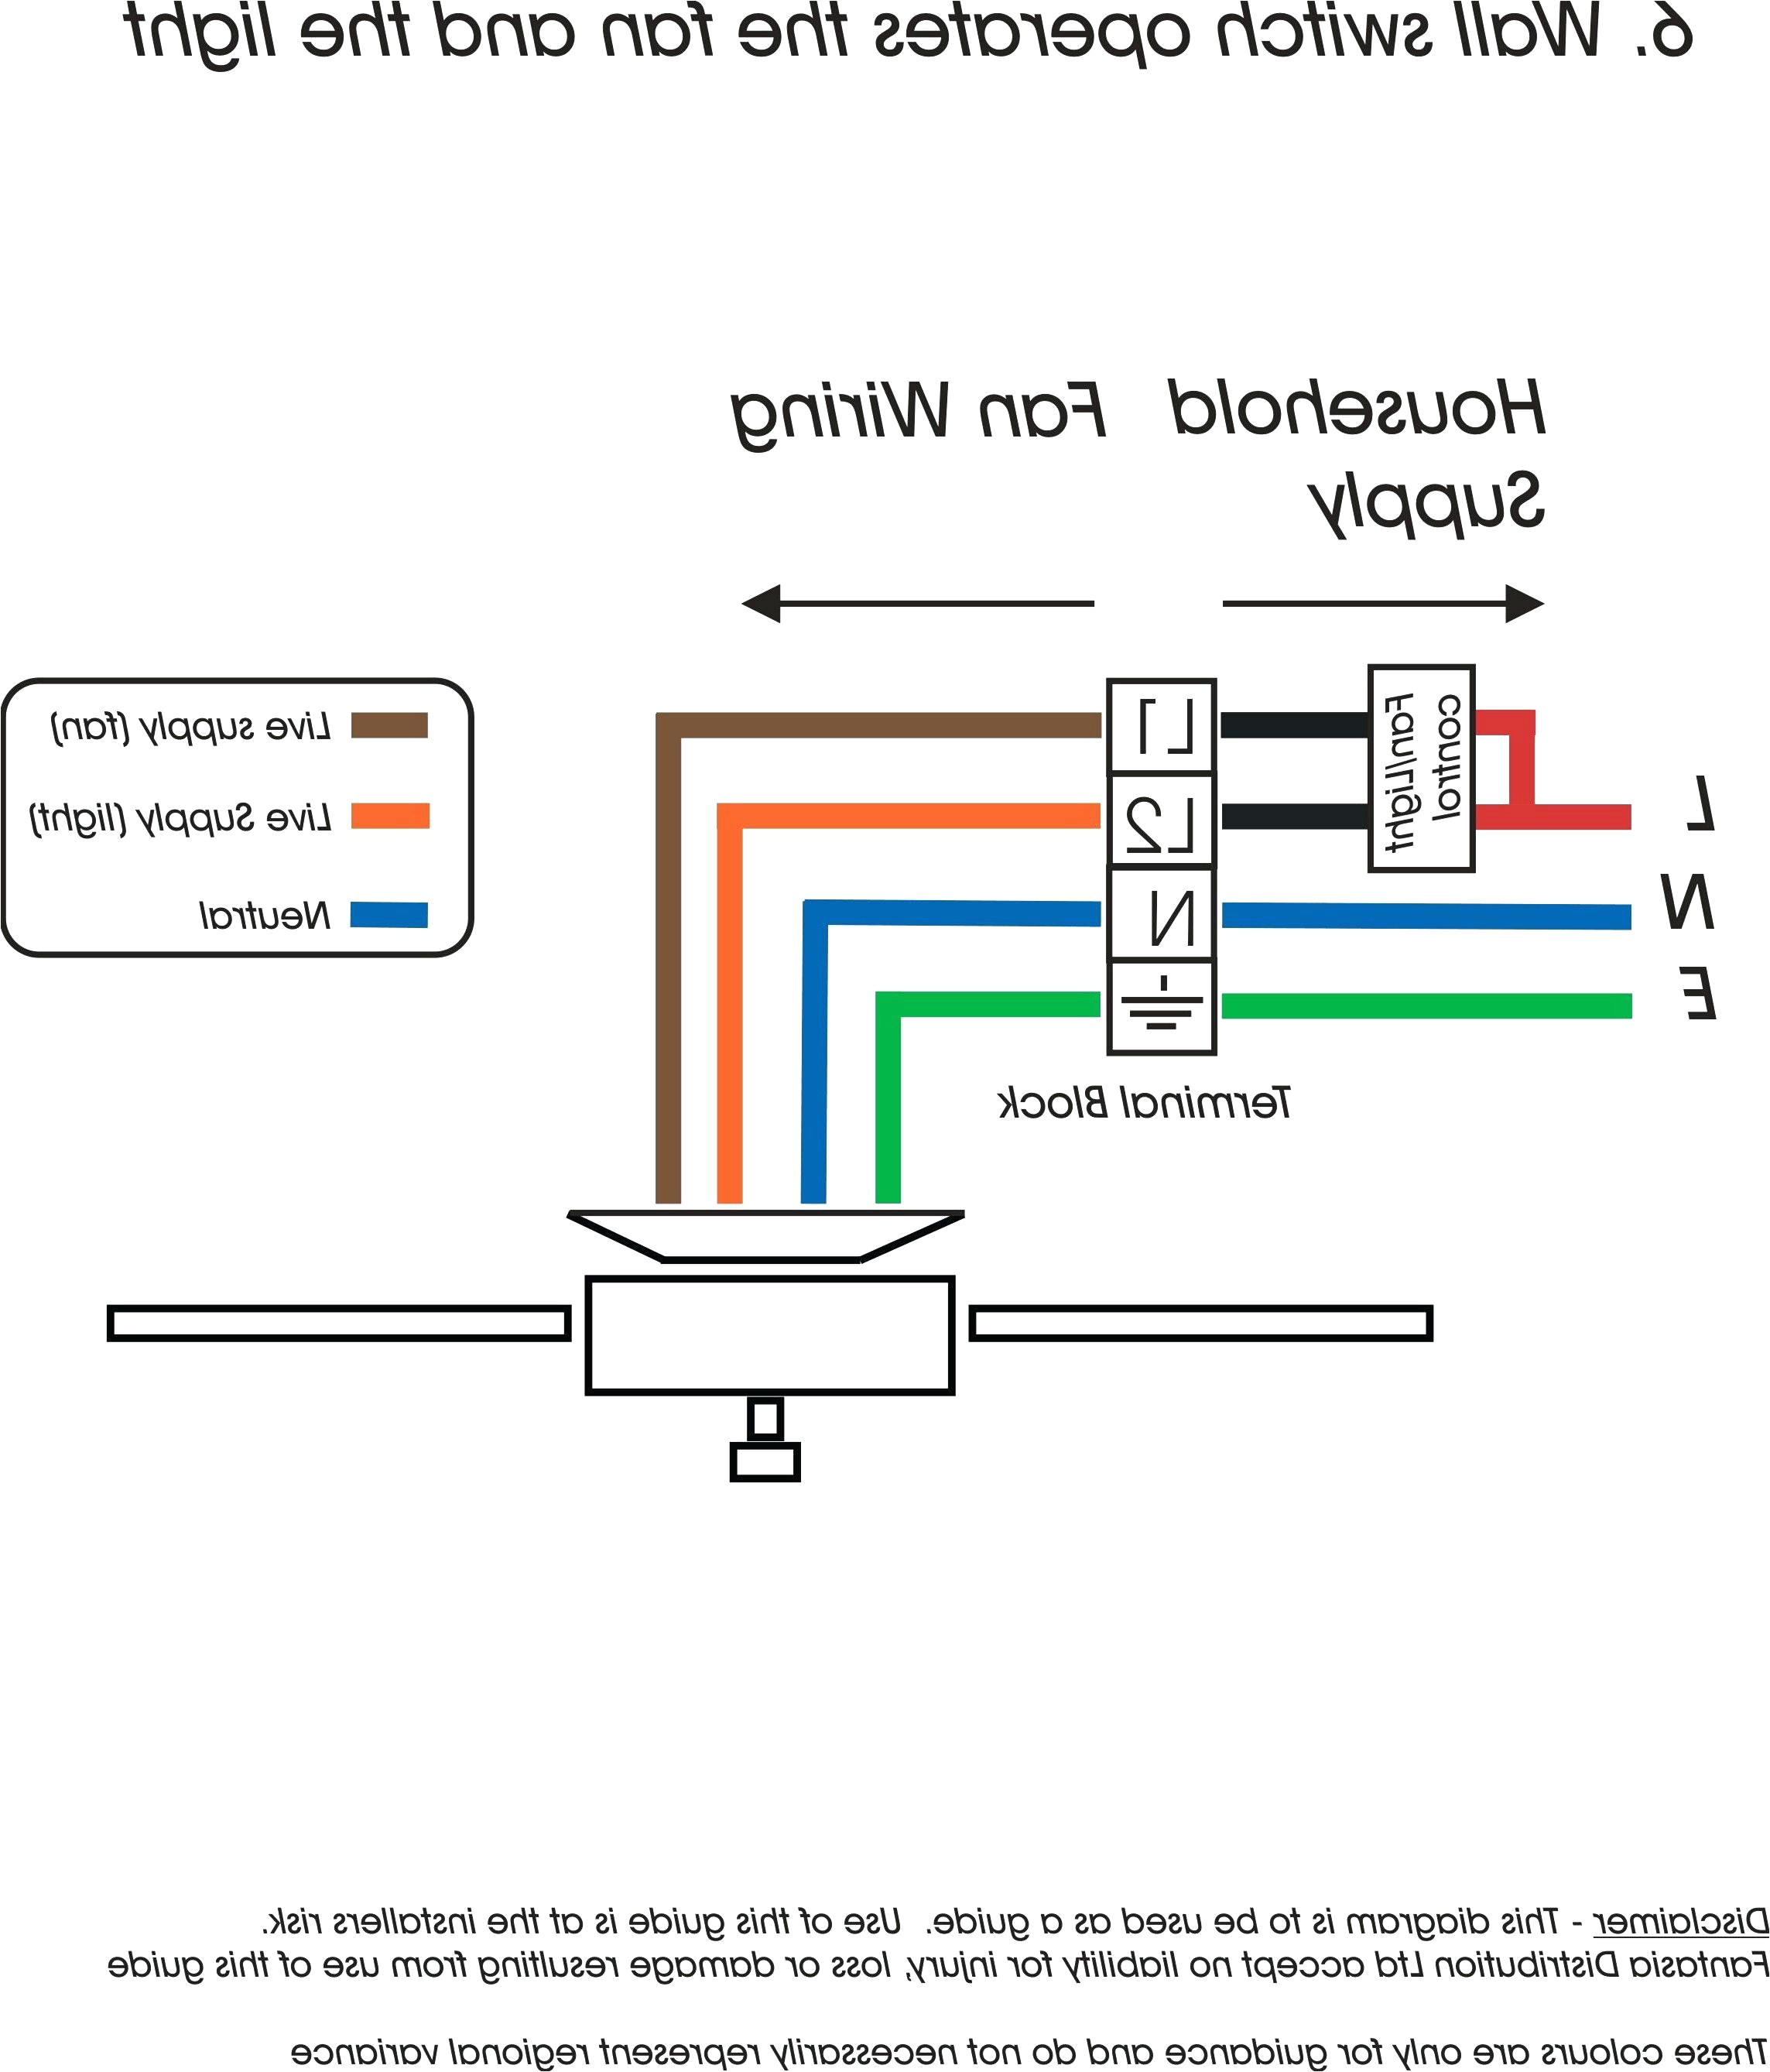 panasonic switch wiring diagram wiring diagramspictures of wiring diagram for bathroom fan and light panasonic best